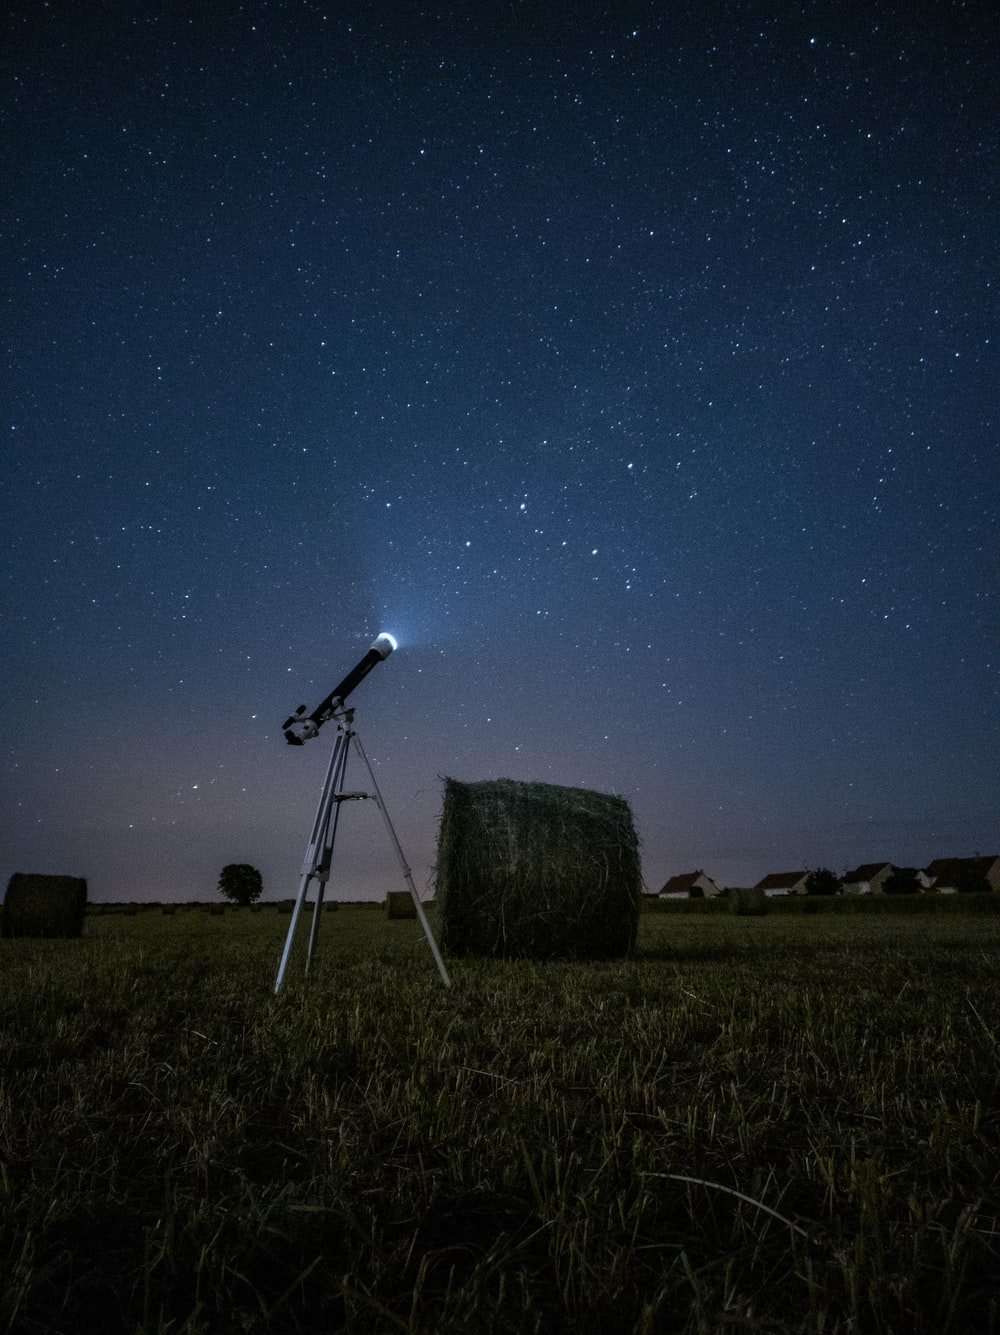 white and black satellite dish on brown field during night time